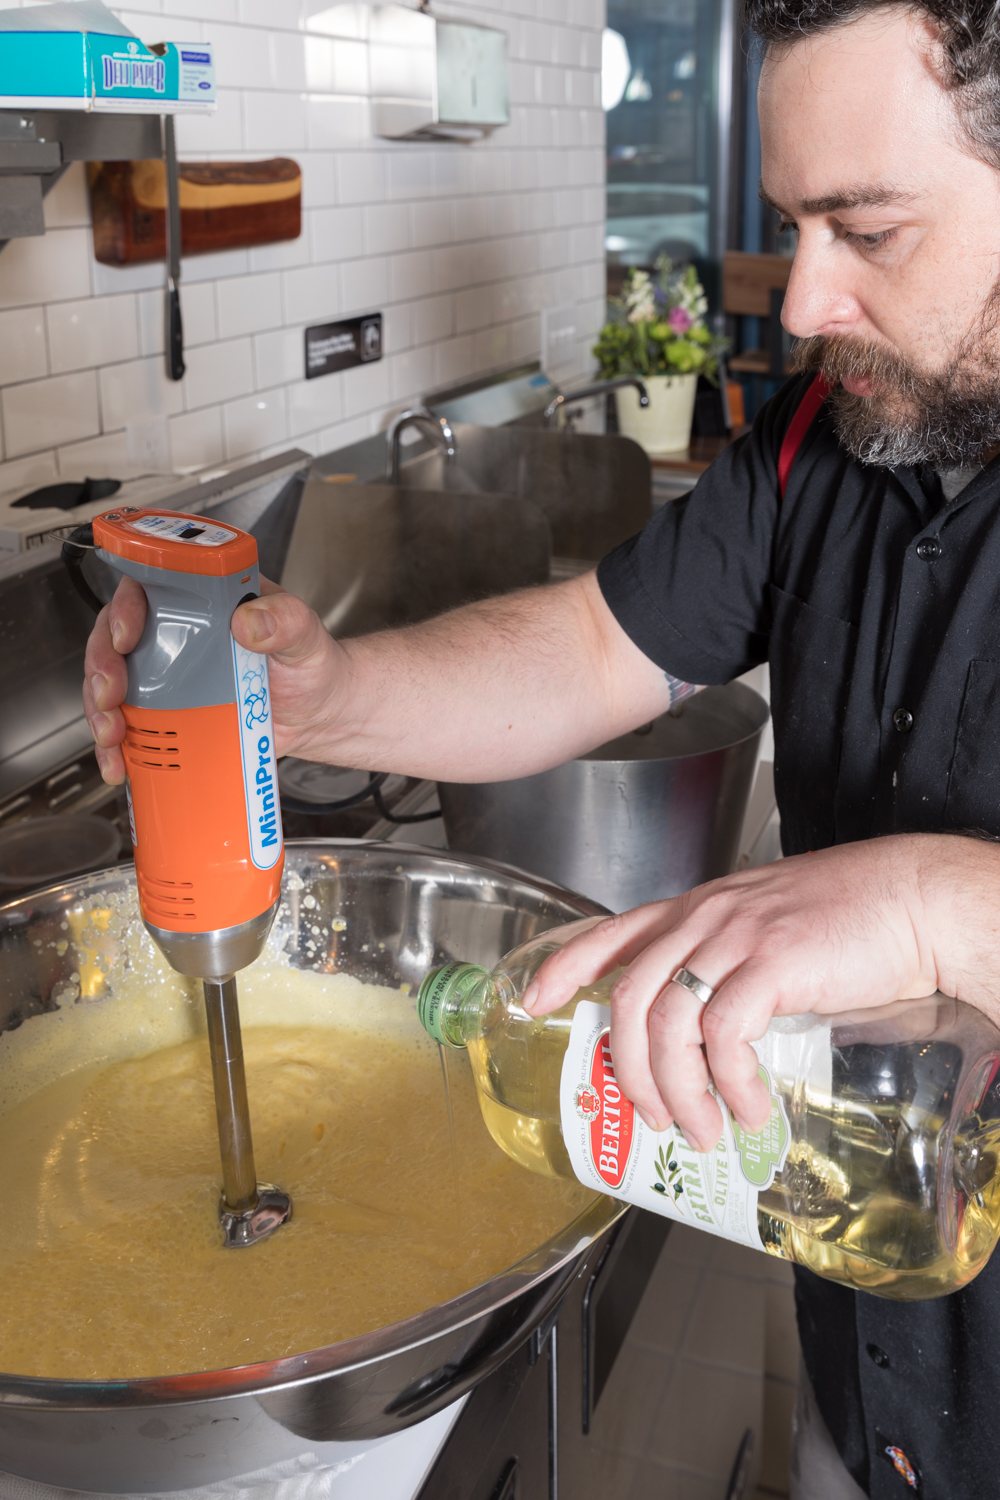 Gary mixes mayonnaise from scratch{ }/ Image: Marlene Rounds // Published: 3.12.19